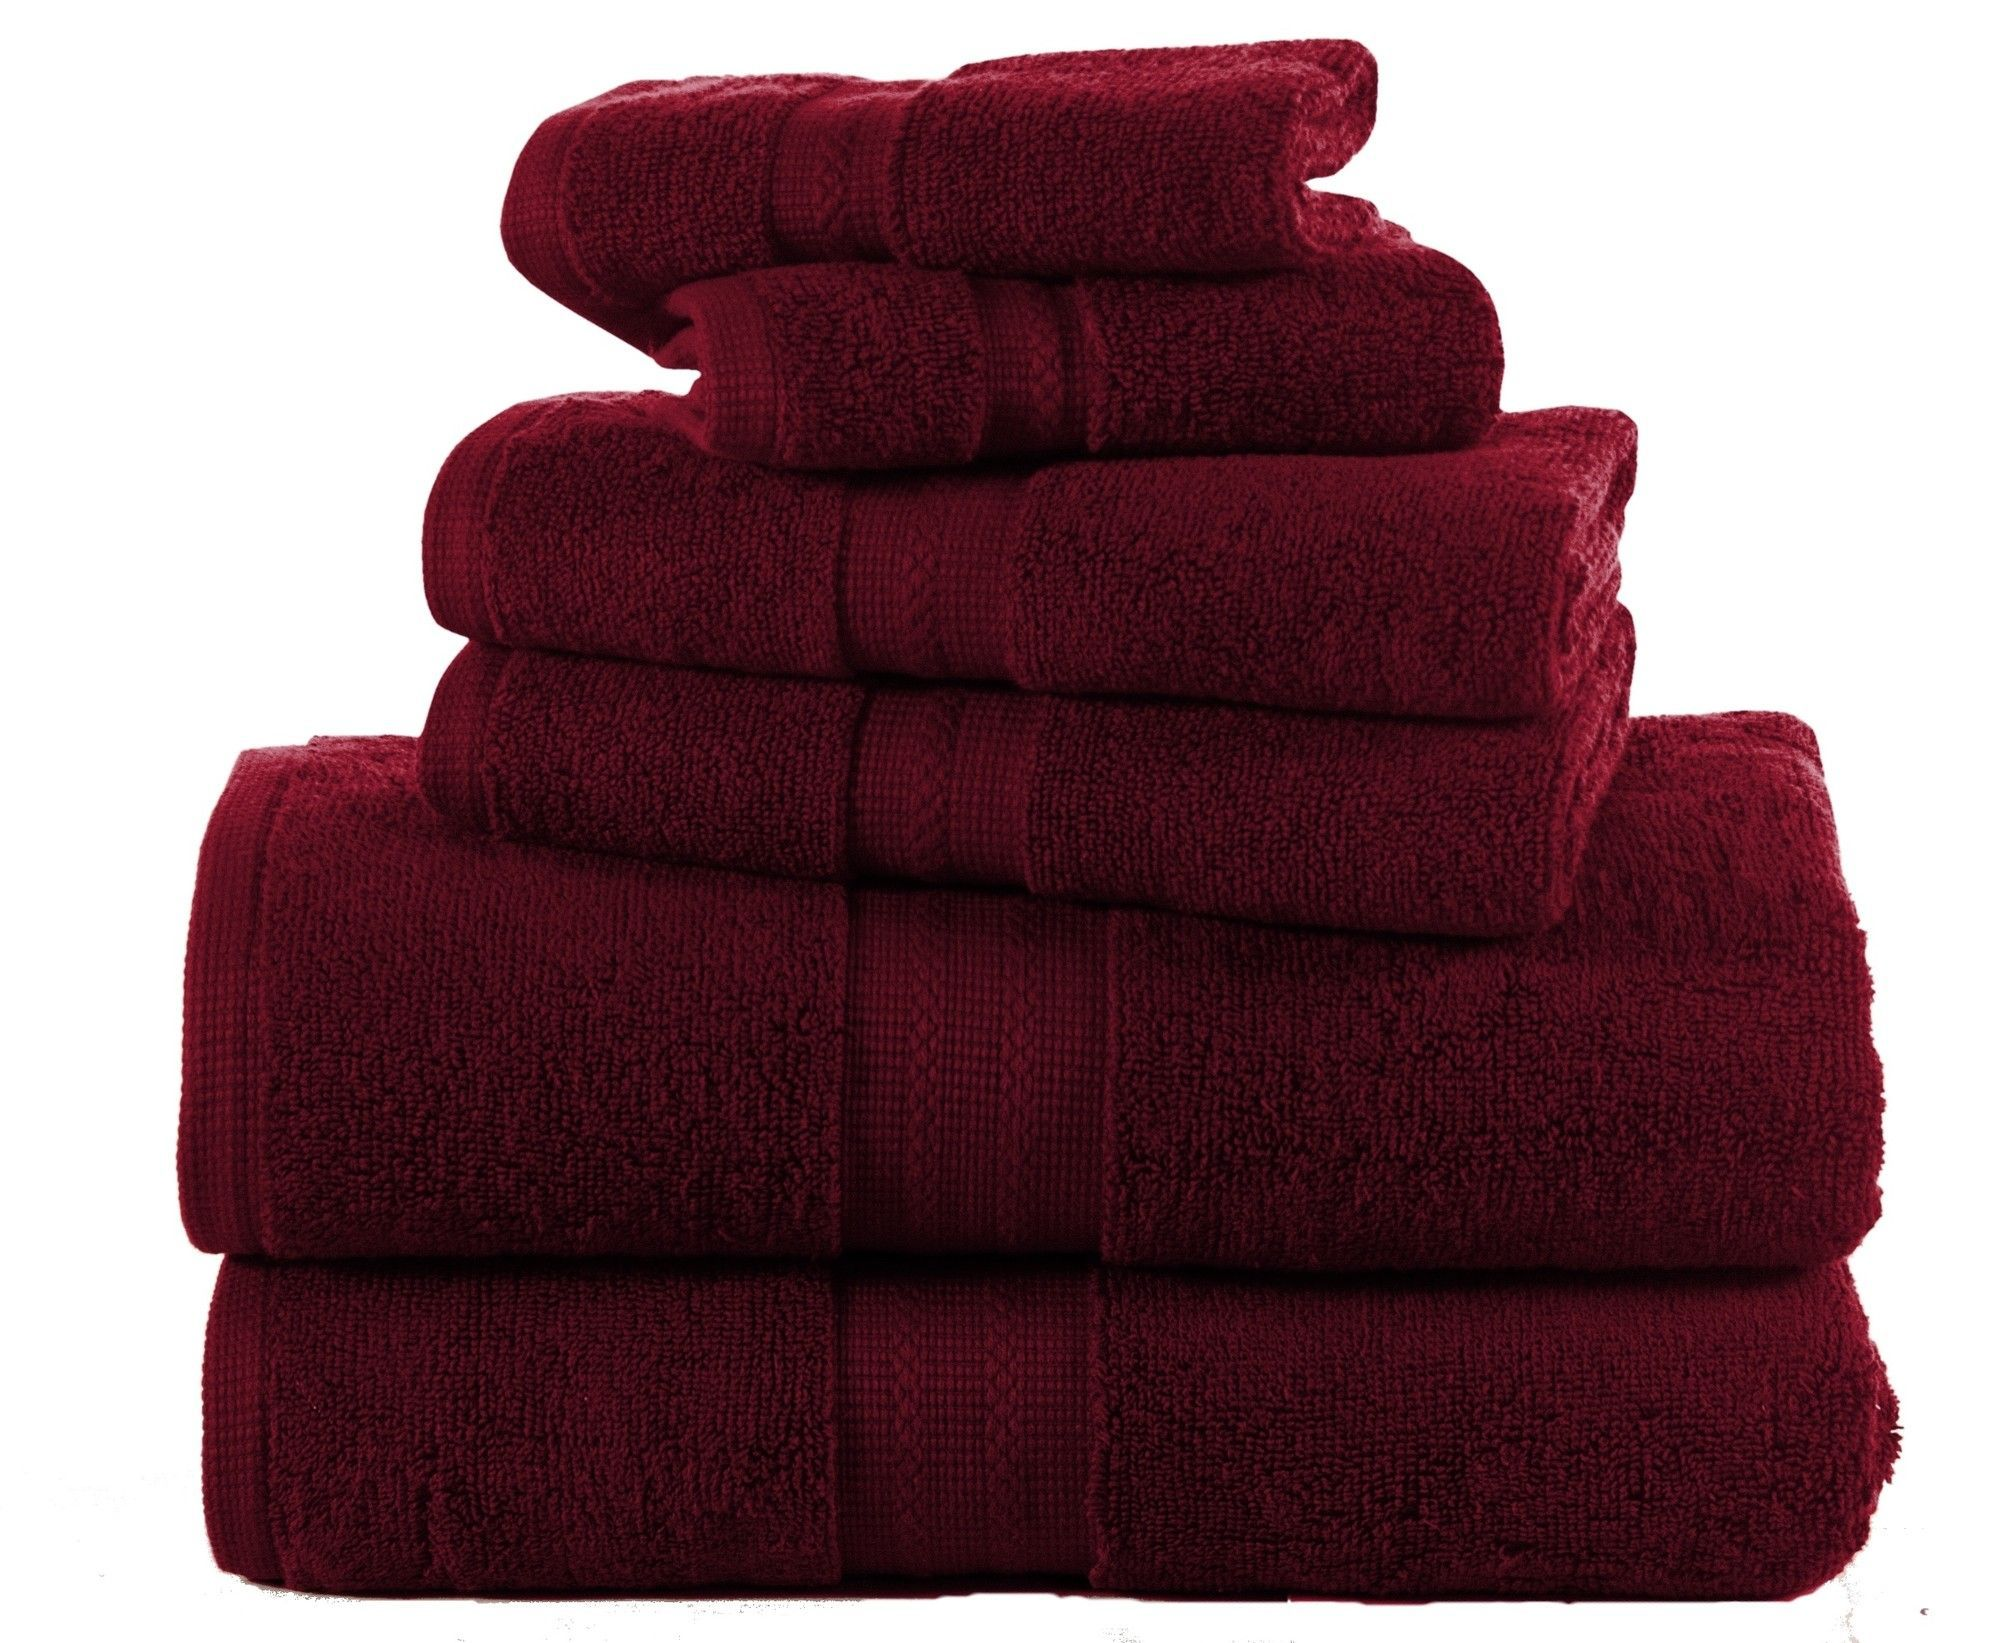 Bano Senses 600 GSM Egyptian Quality Cotton 6 Piece Towel Set